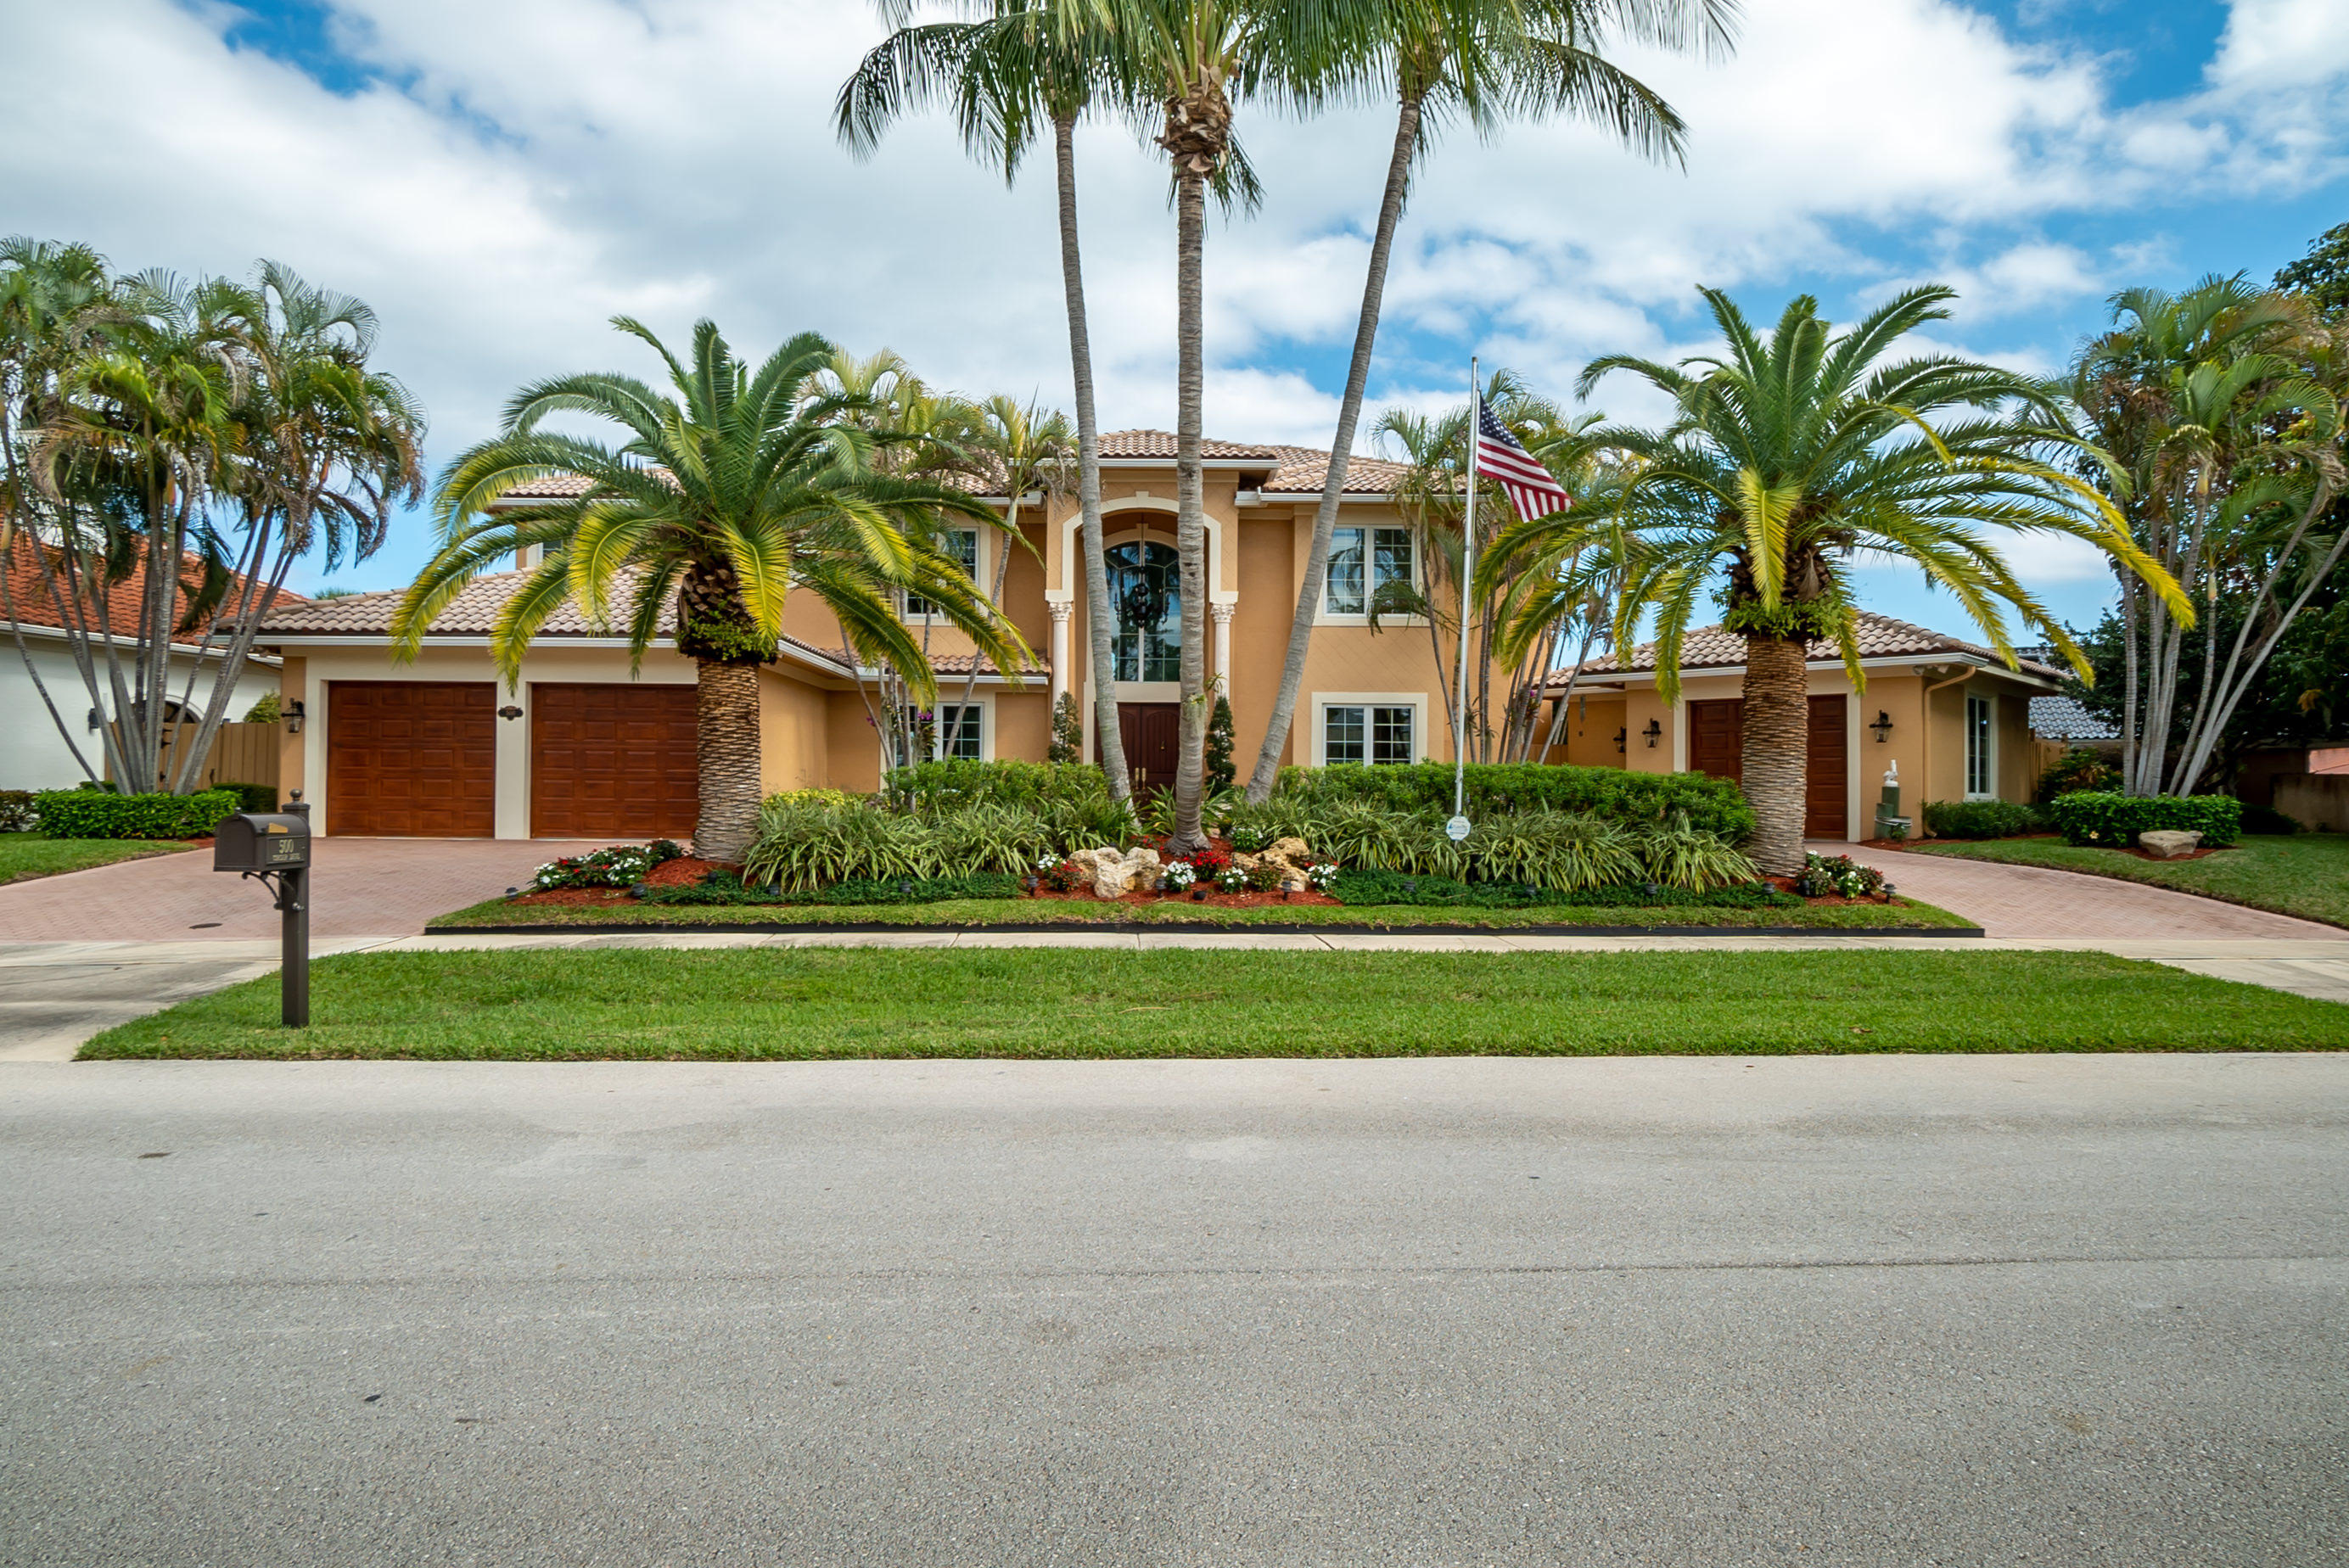 500 Corsair Drive, North Palm Beach, Florida 33408, 4 Bedrooms Bedrooms, ,4 BathroomsBathrooms,A,Single family,Corsair,RX-10596052